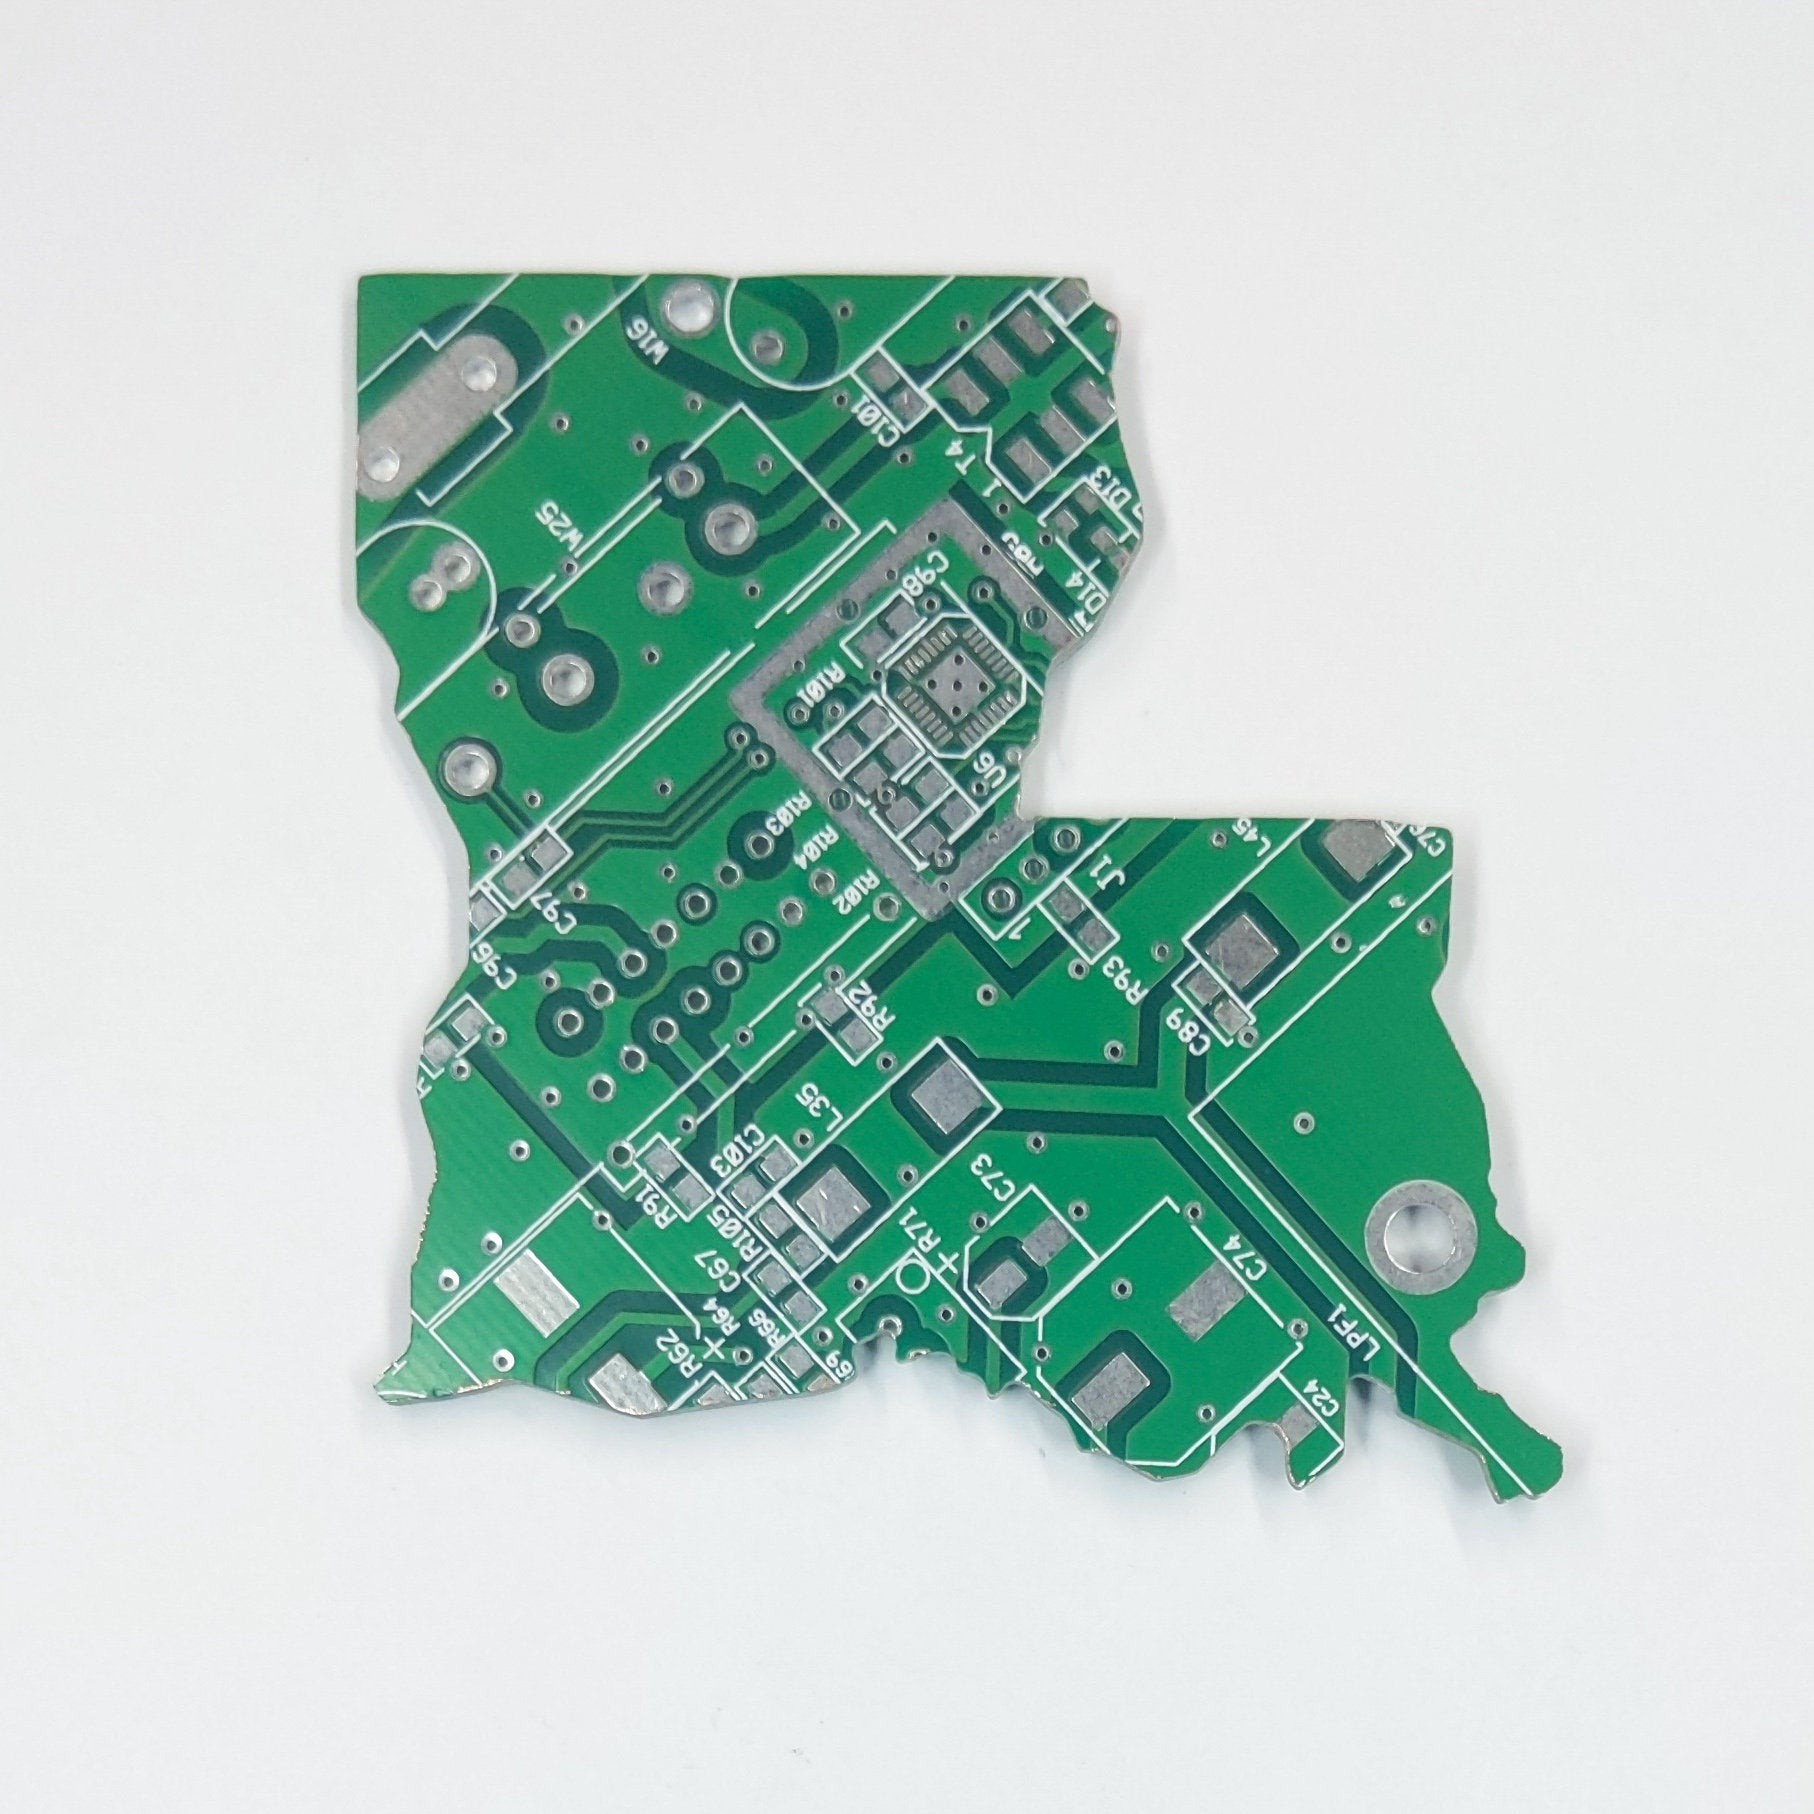 Circuit Board Louisiana - TechWears Ltd